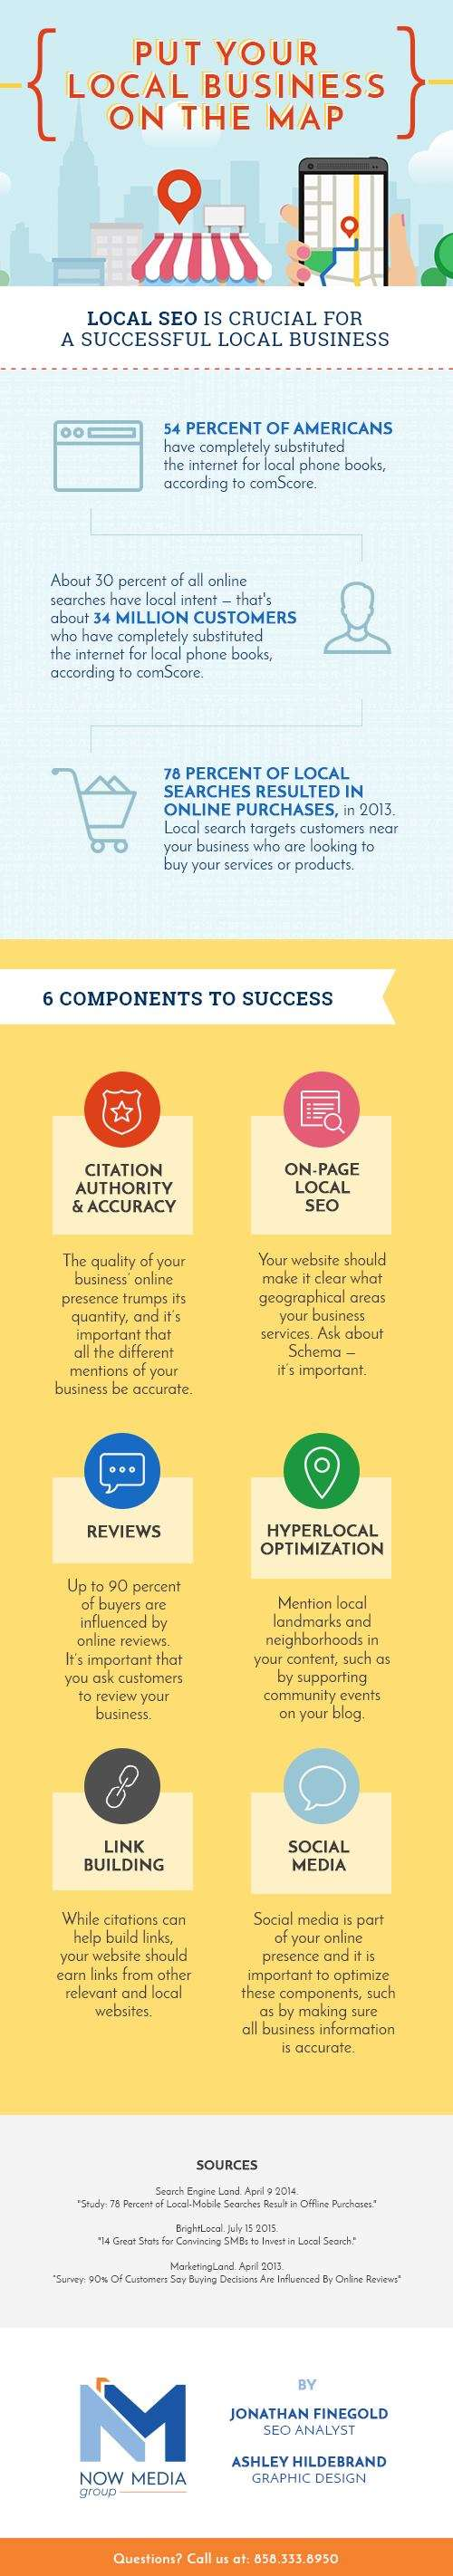 Local search optimization infographic.